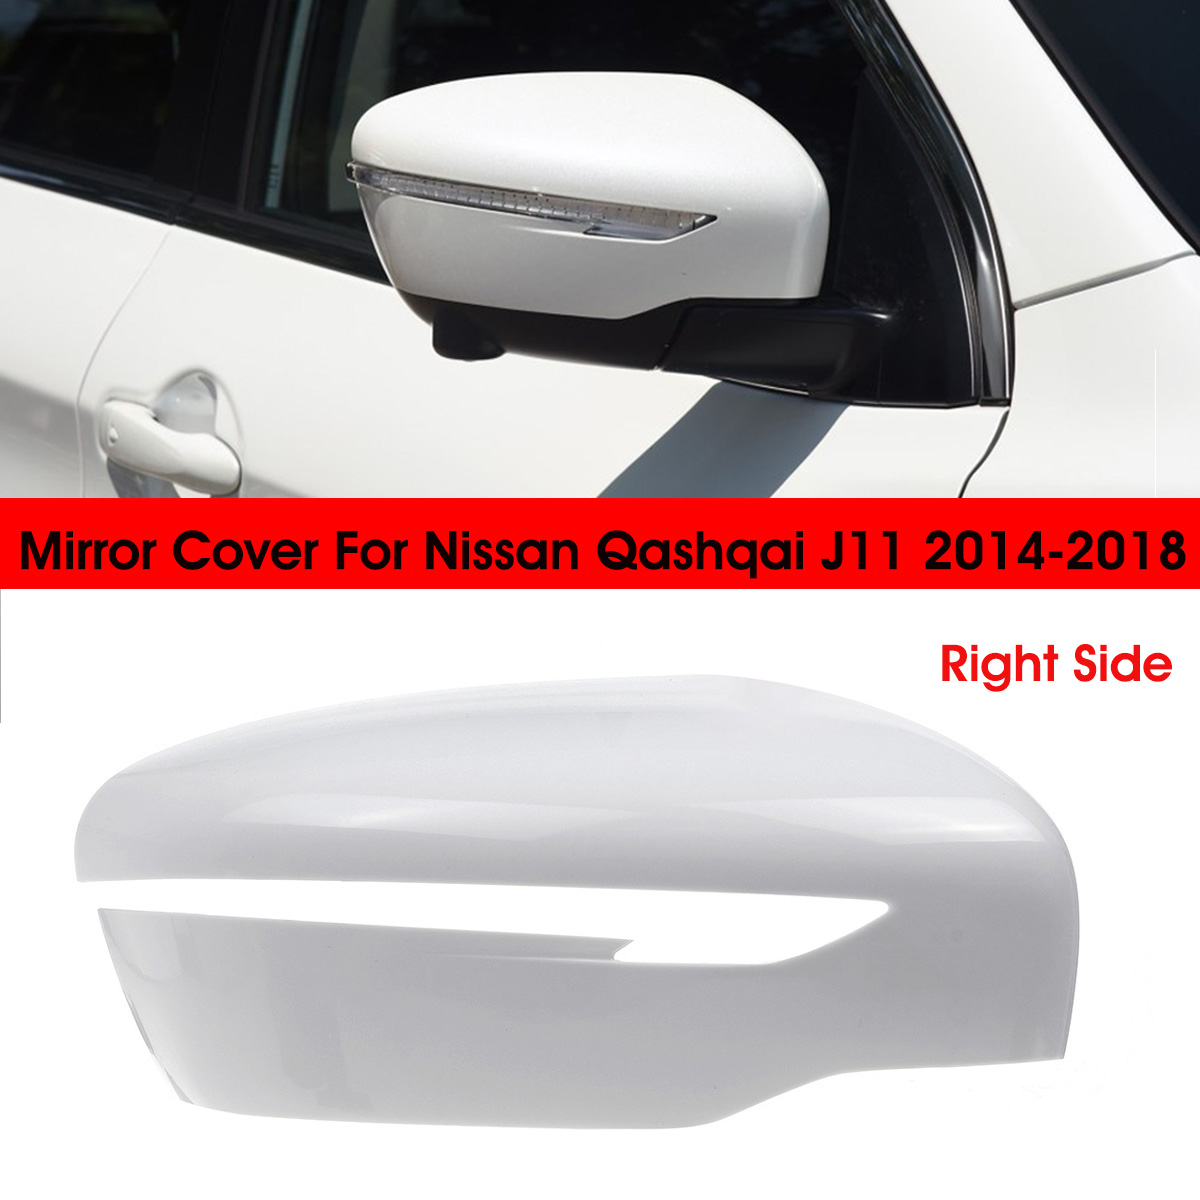 Right Side Wing Mirror Cover Cap Blakc Casing For Nissan Qashqai X-Trail